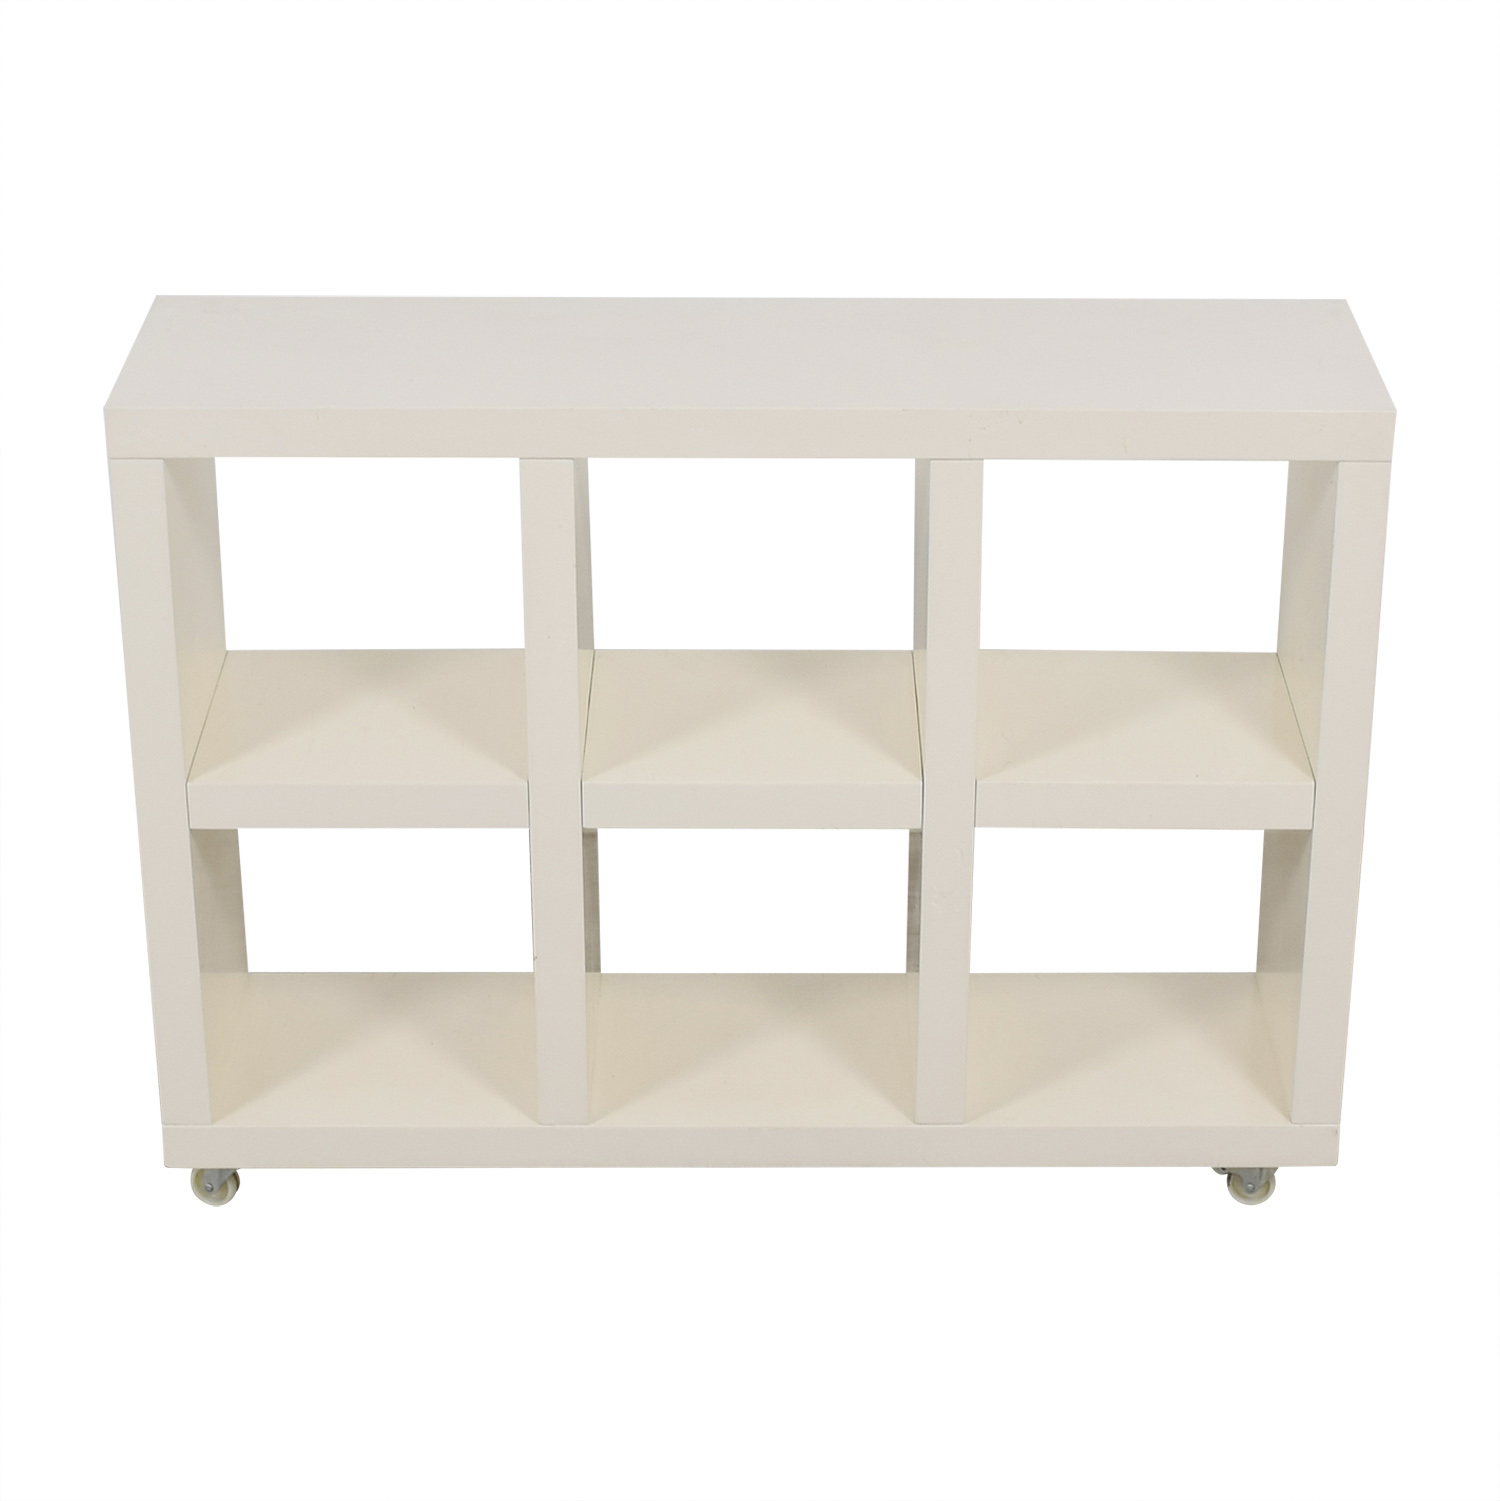 West Elm West Elm White Bookcase on Casters nj